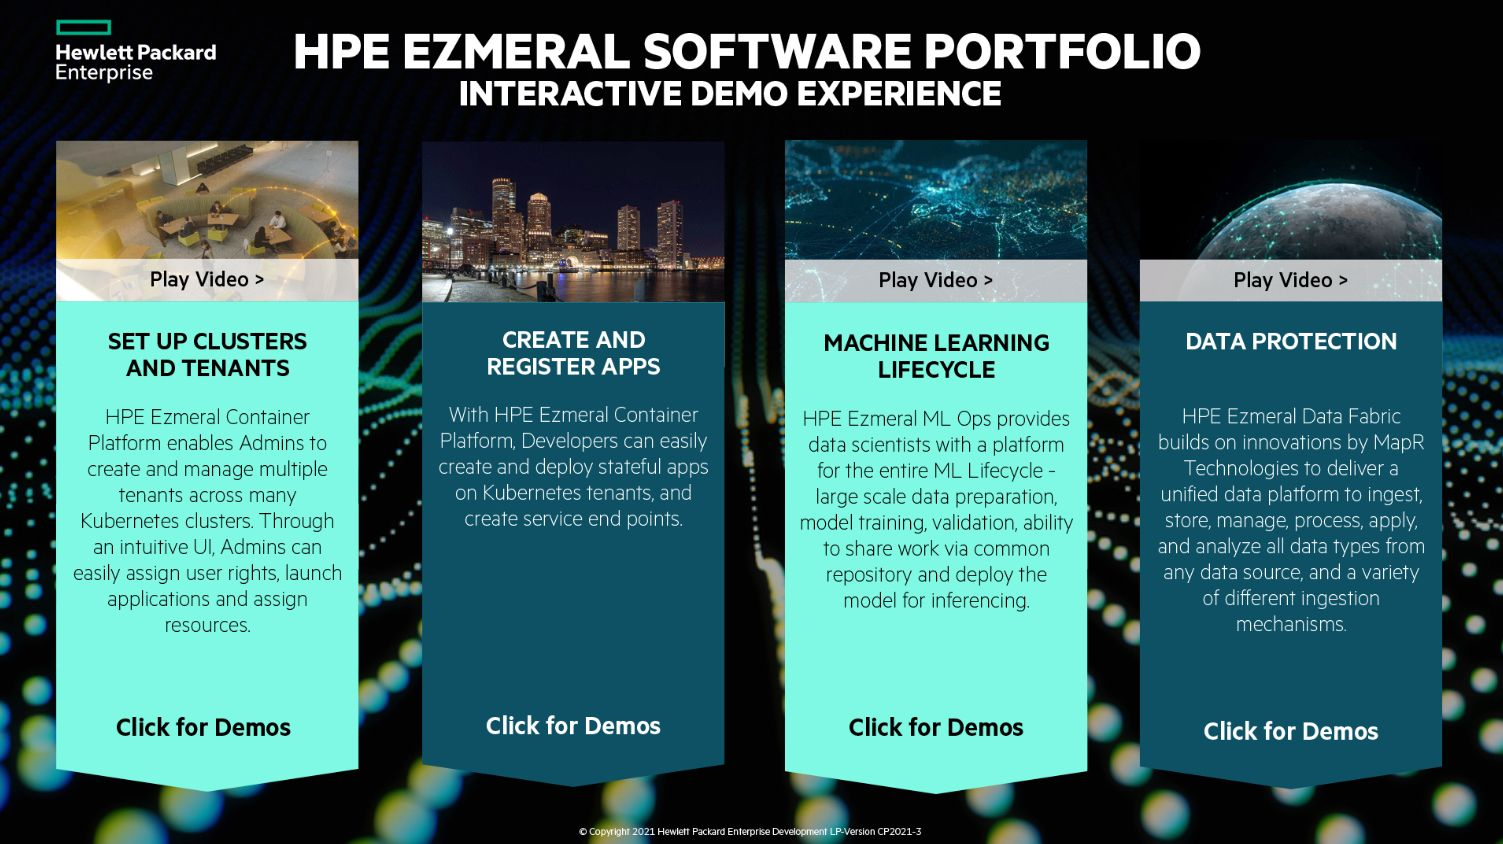 Figure 1 - The HPE Ezmeral Container Platform Integrated Demo Experience